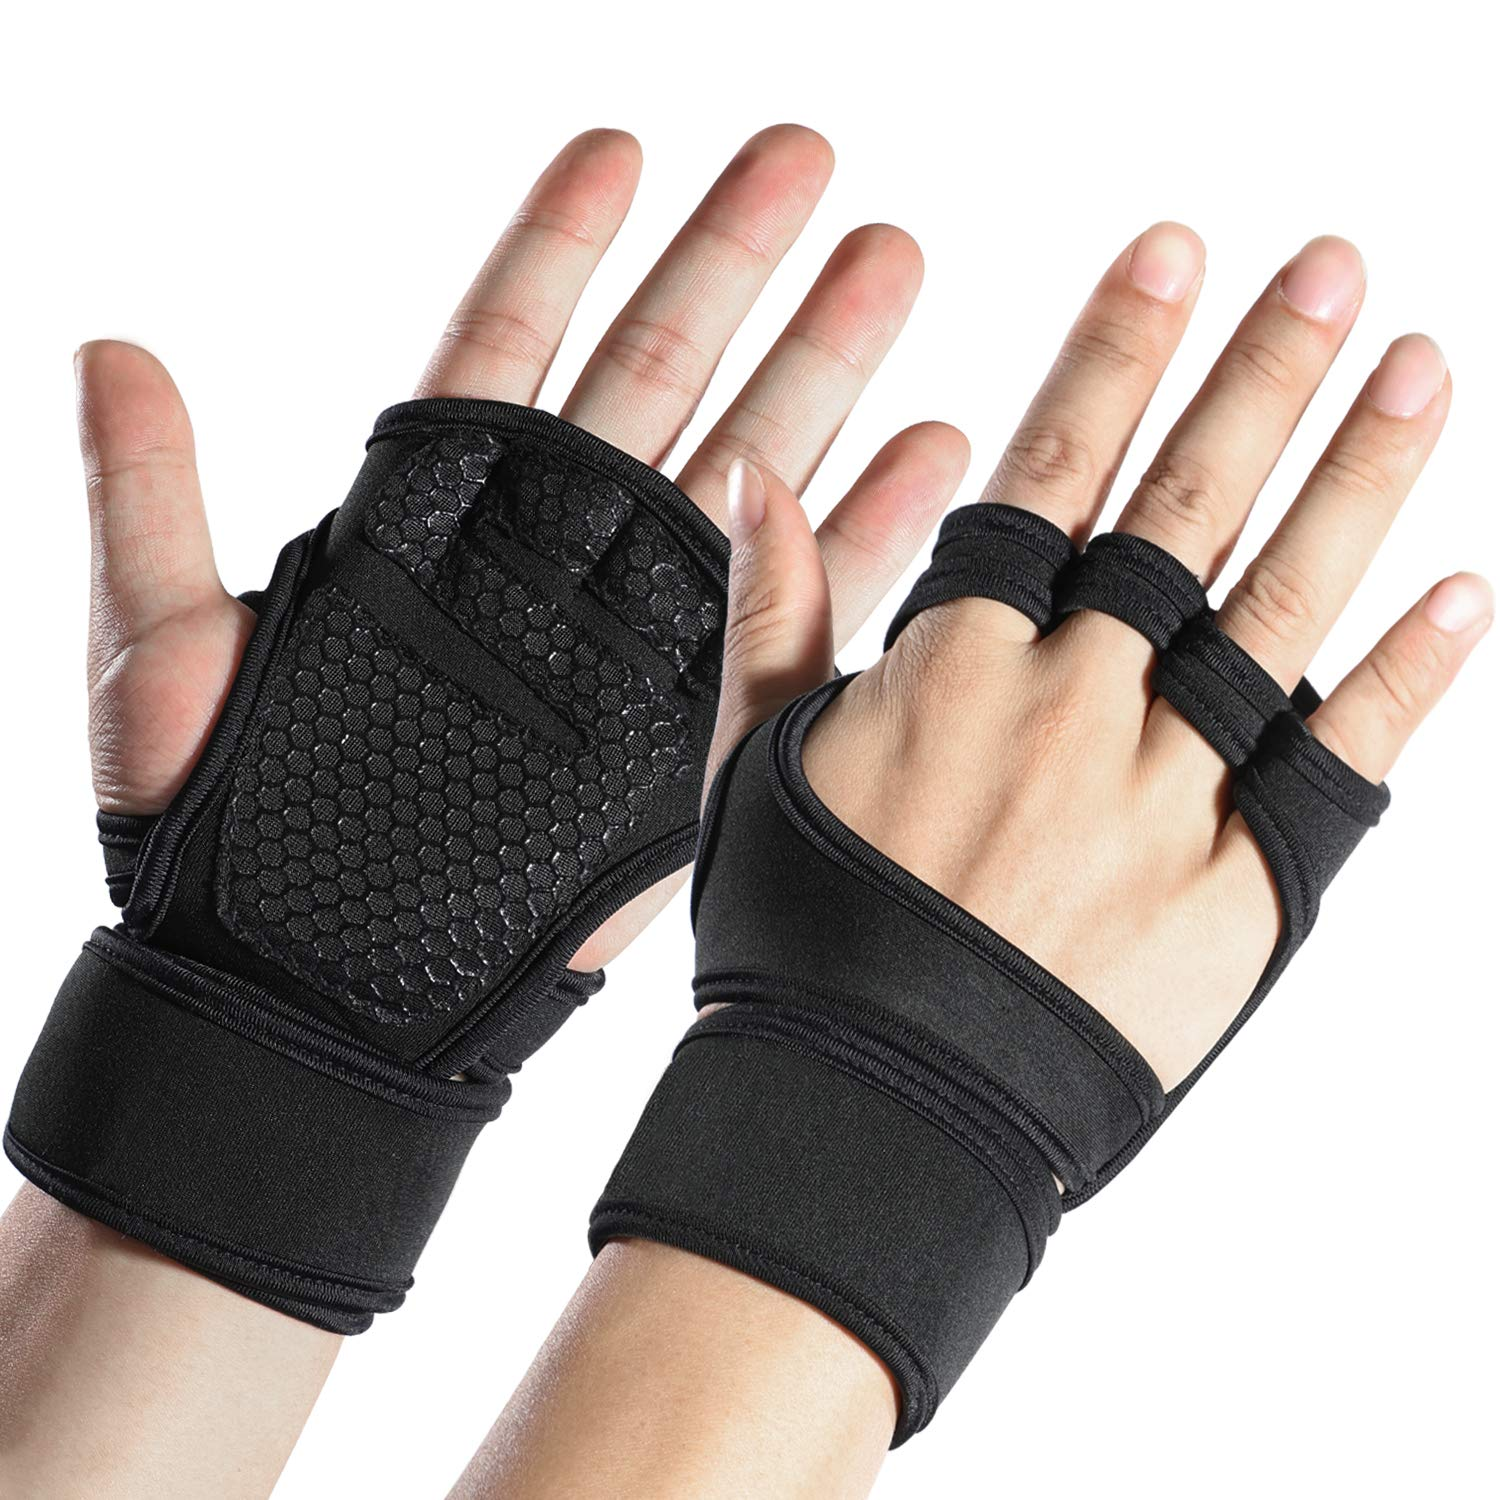 gyming gloves for workouts